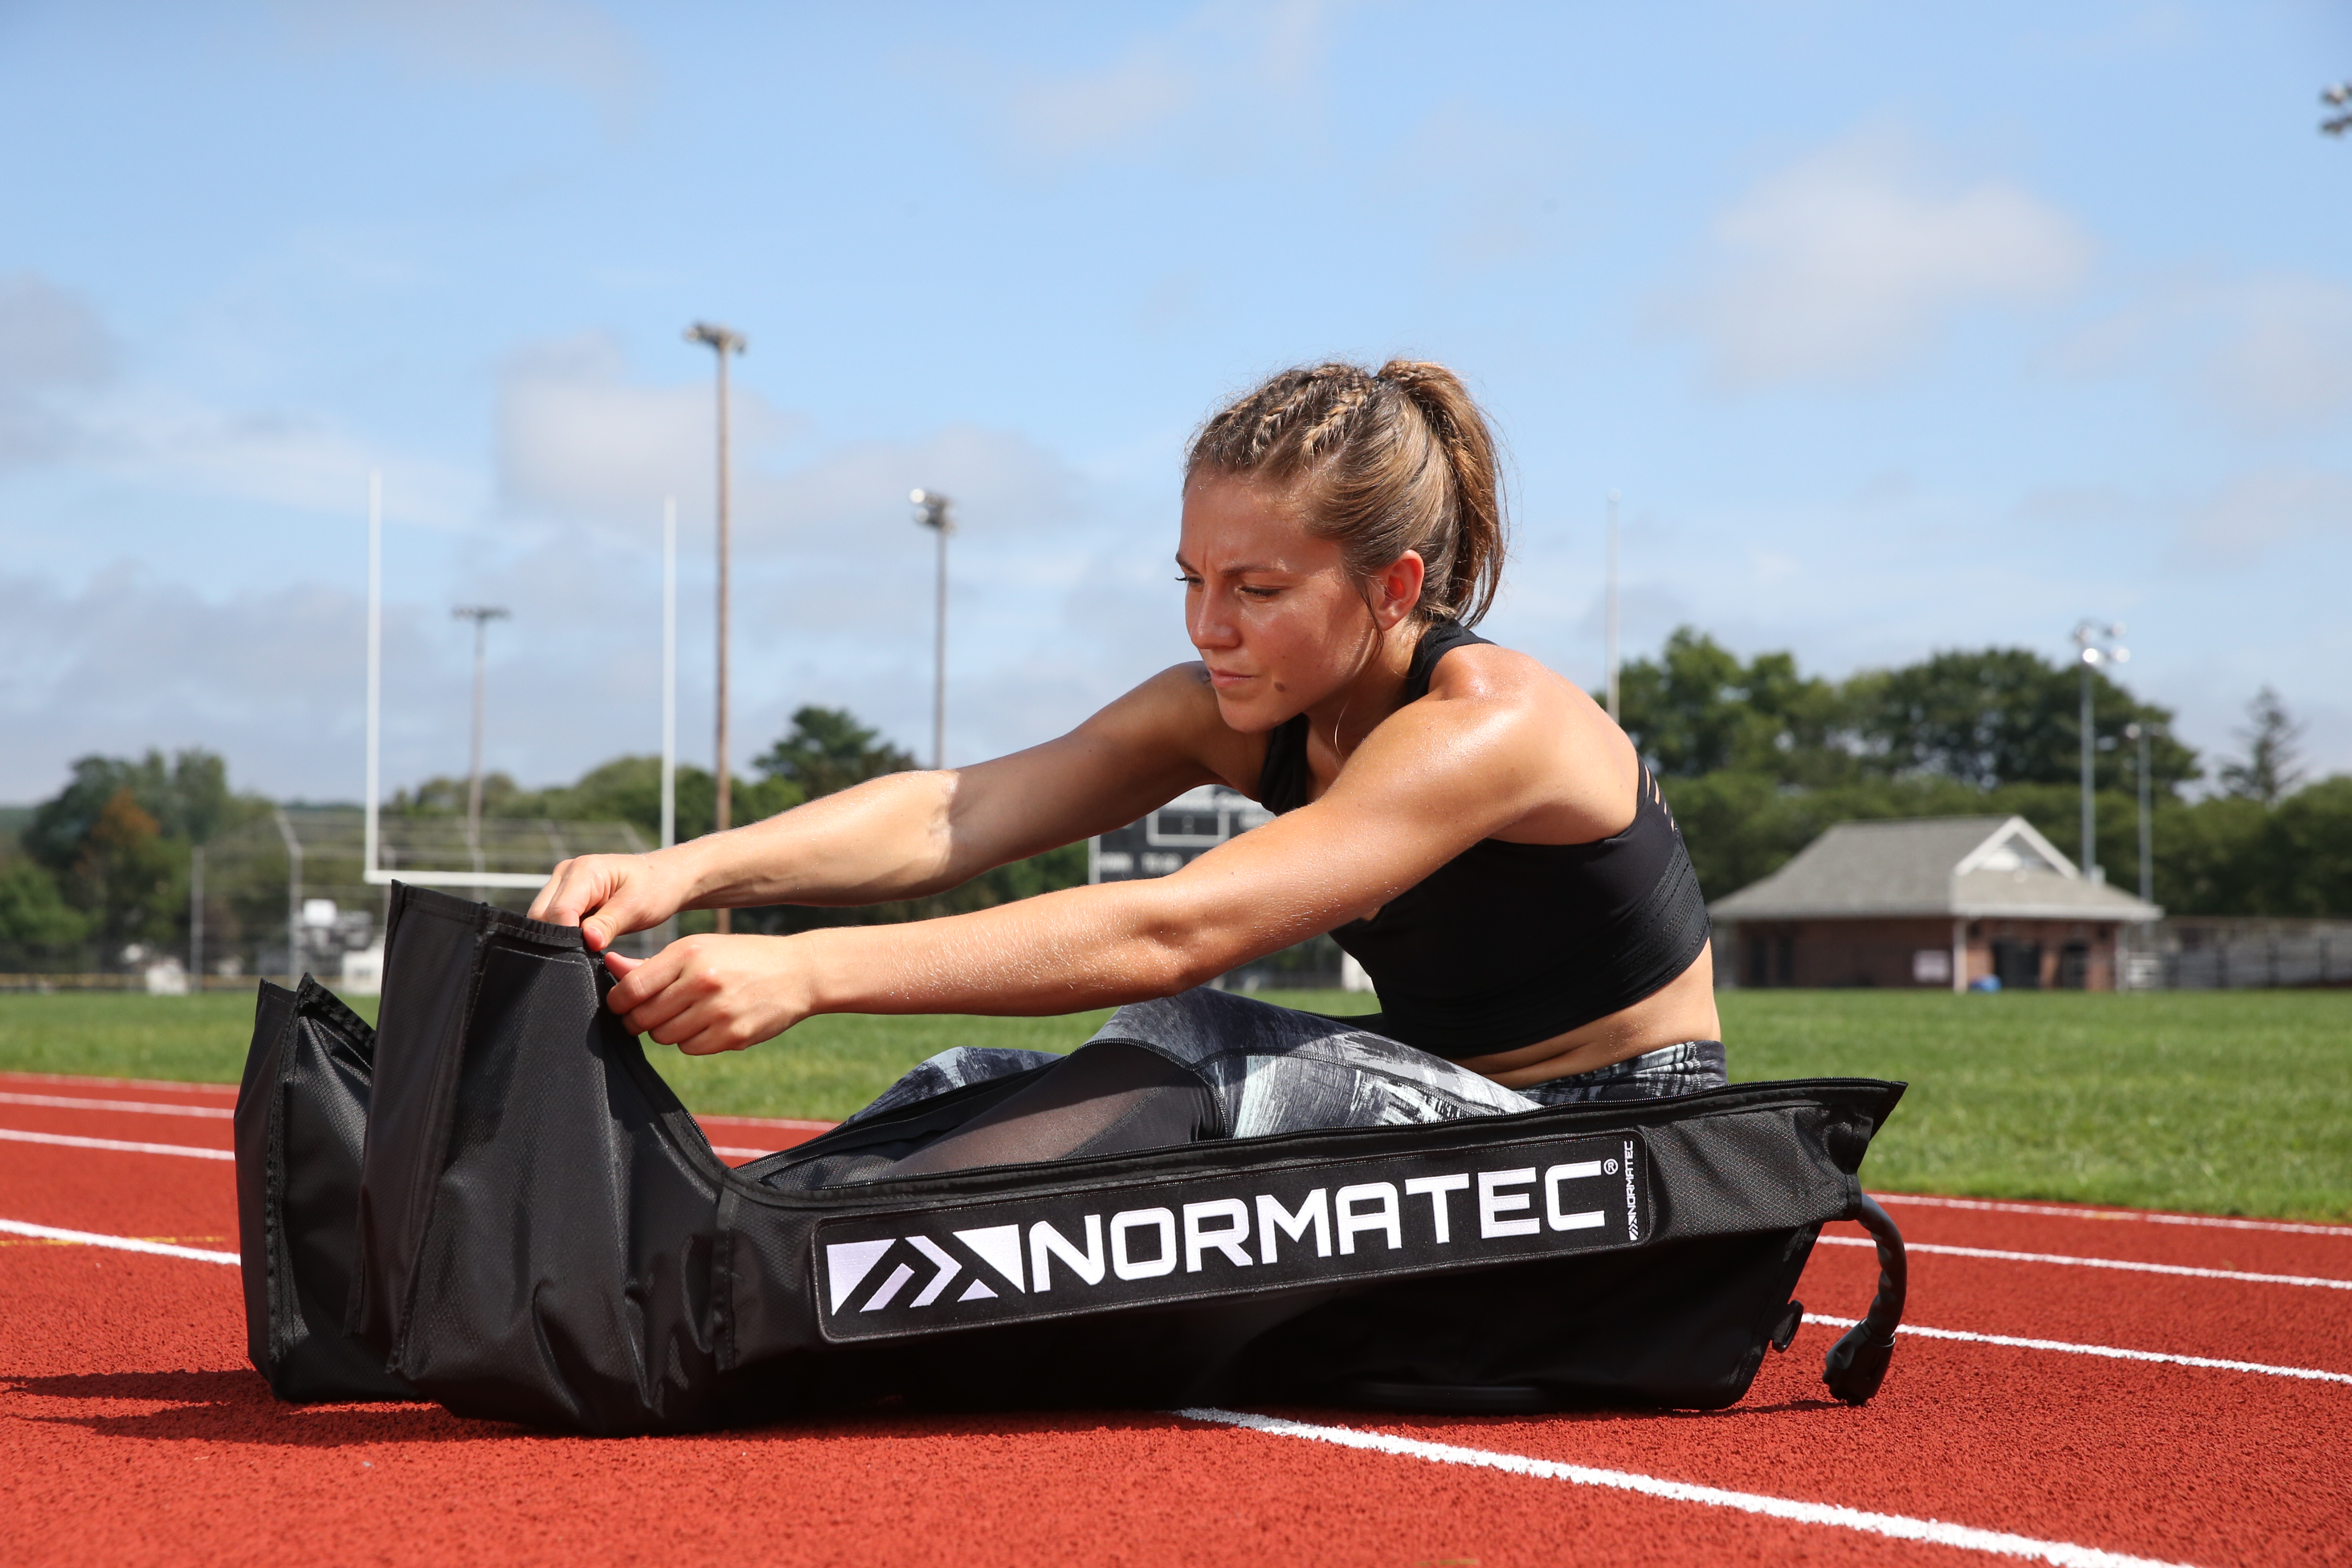 NormaTec, Norma Tec, compression, pneumatic, recovery, athlete